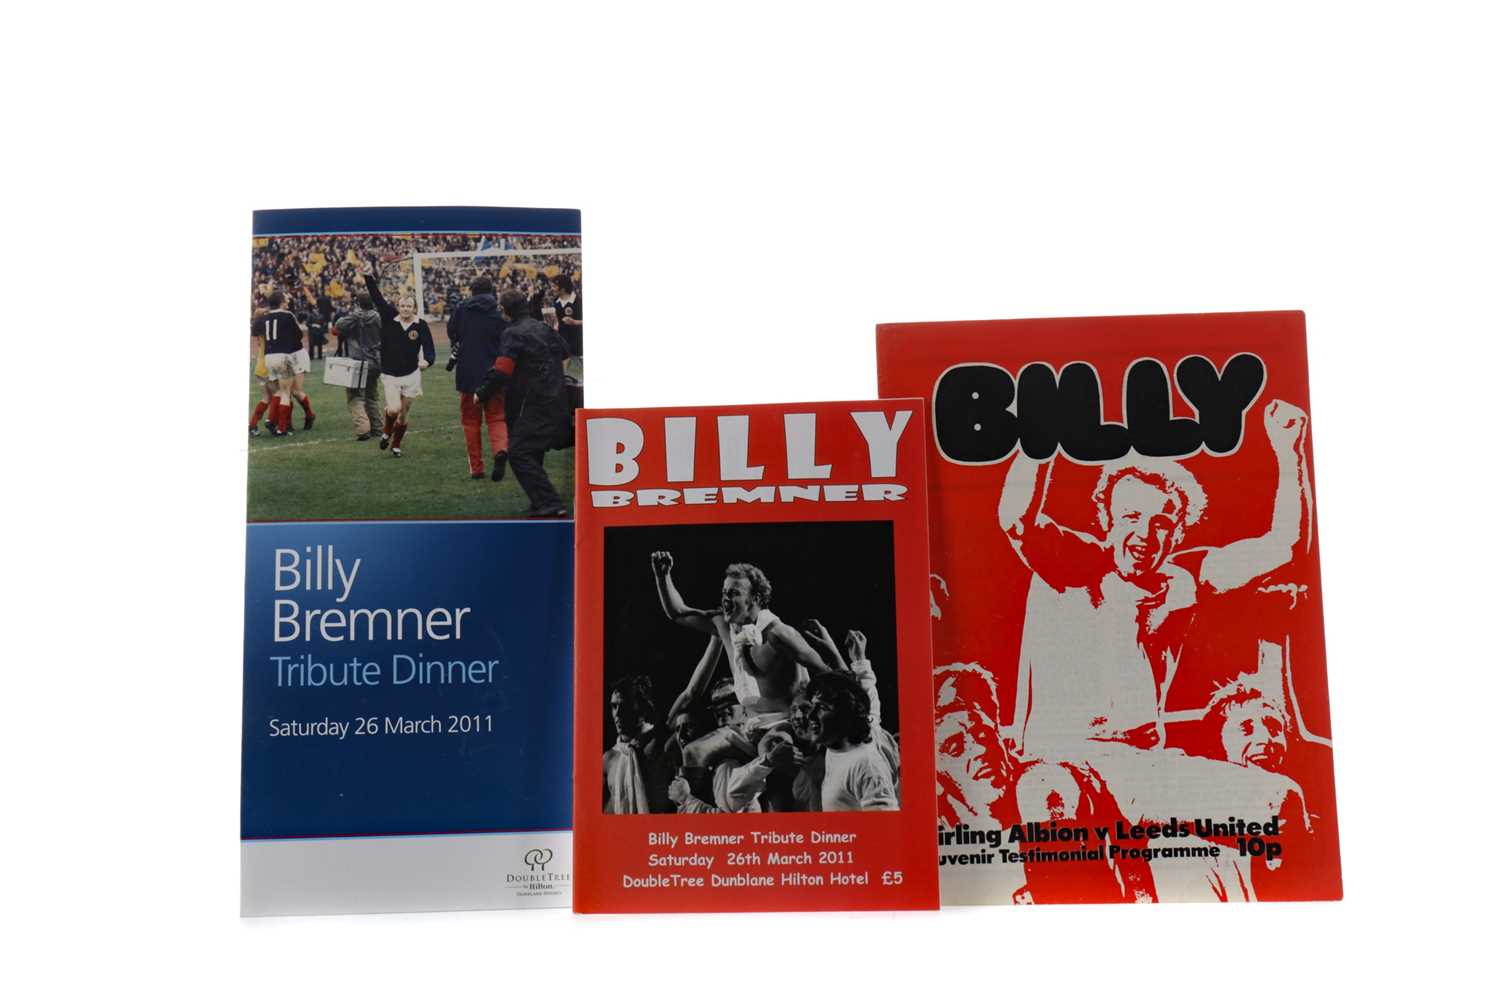 Lot 1809 - A BILLY BREMNER TESTIMONIAL PROGRAMME, ALONG WITH TWO TRIBUTE DINNER PROGRAMMES